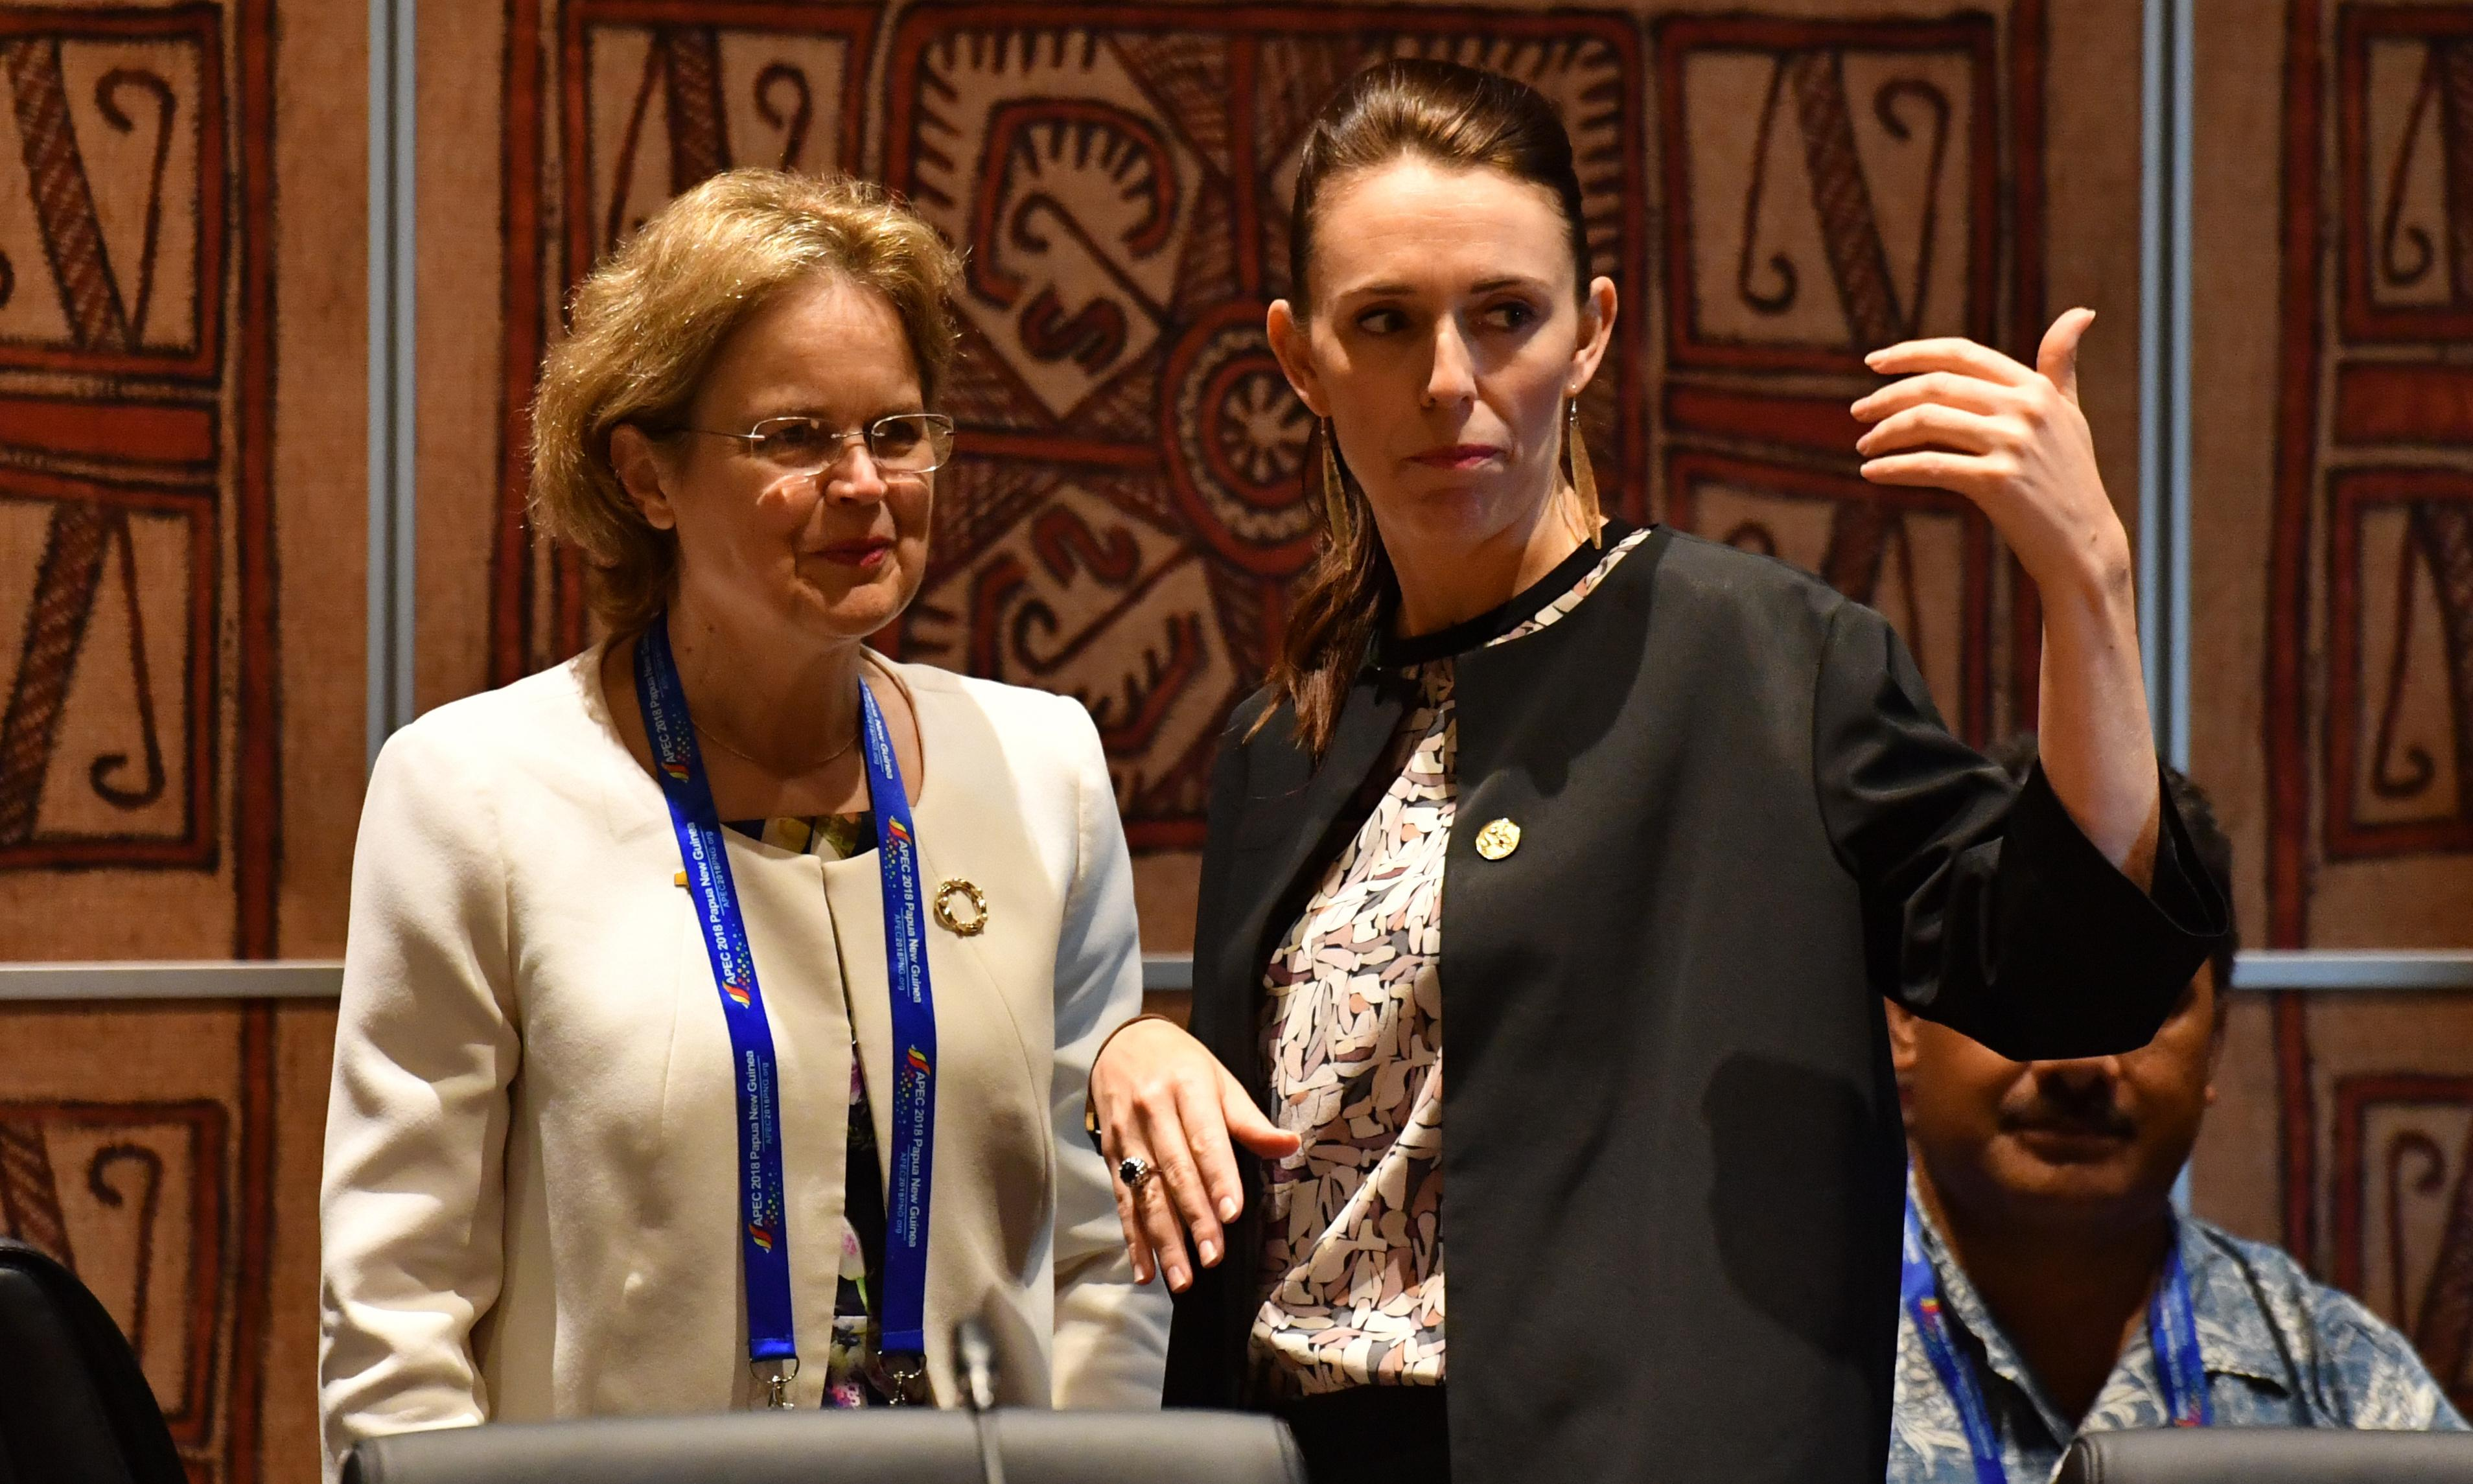 From diplomacy to security, Australian women missing from world stage